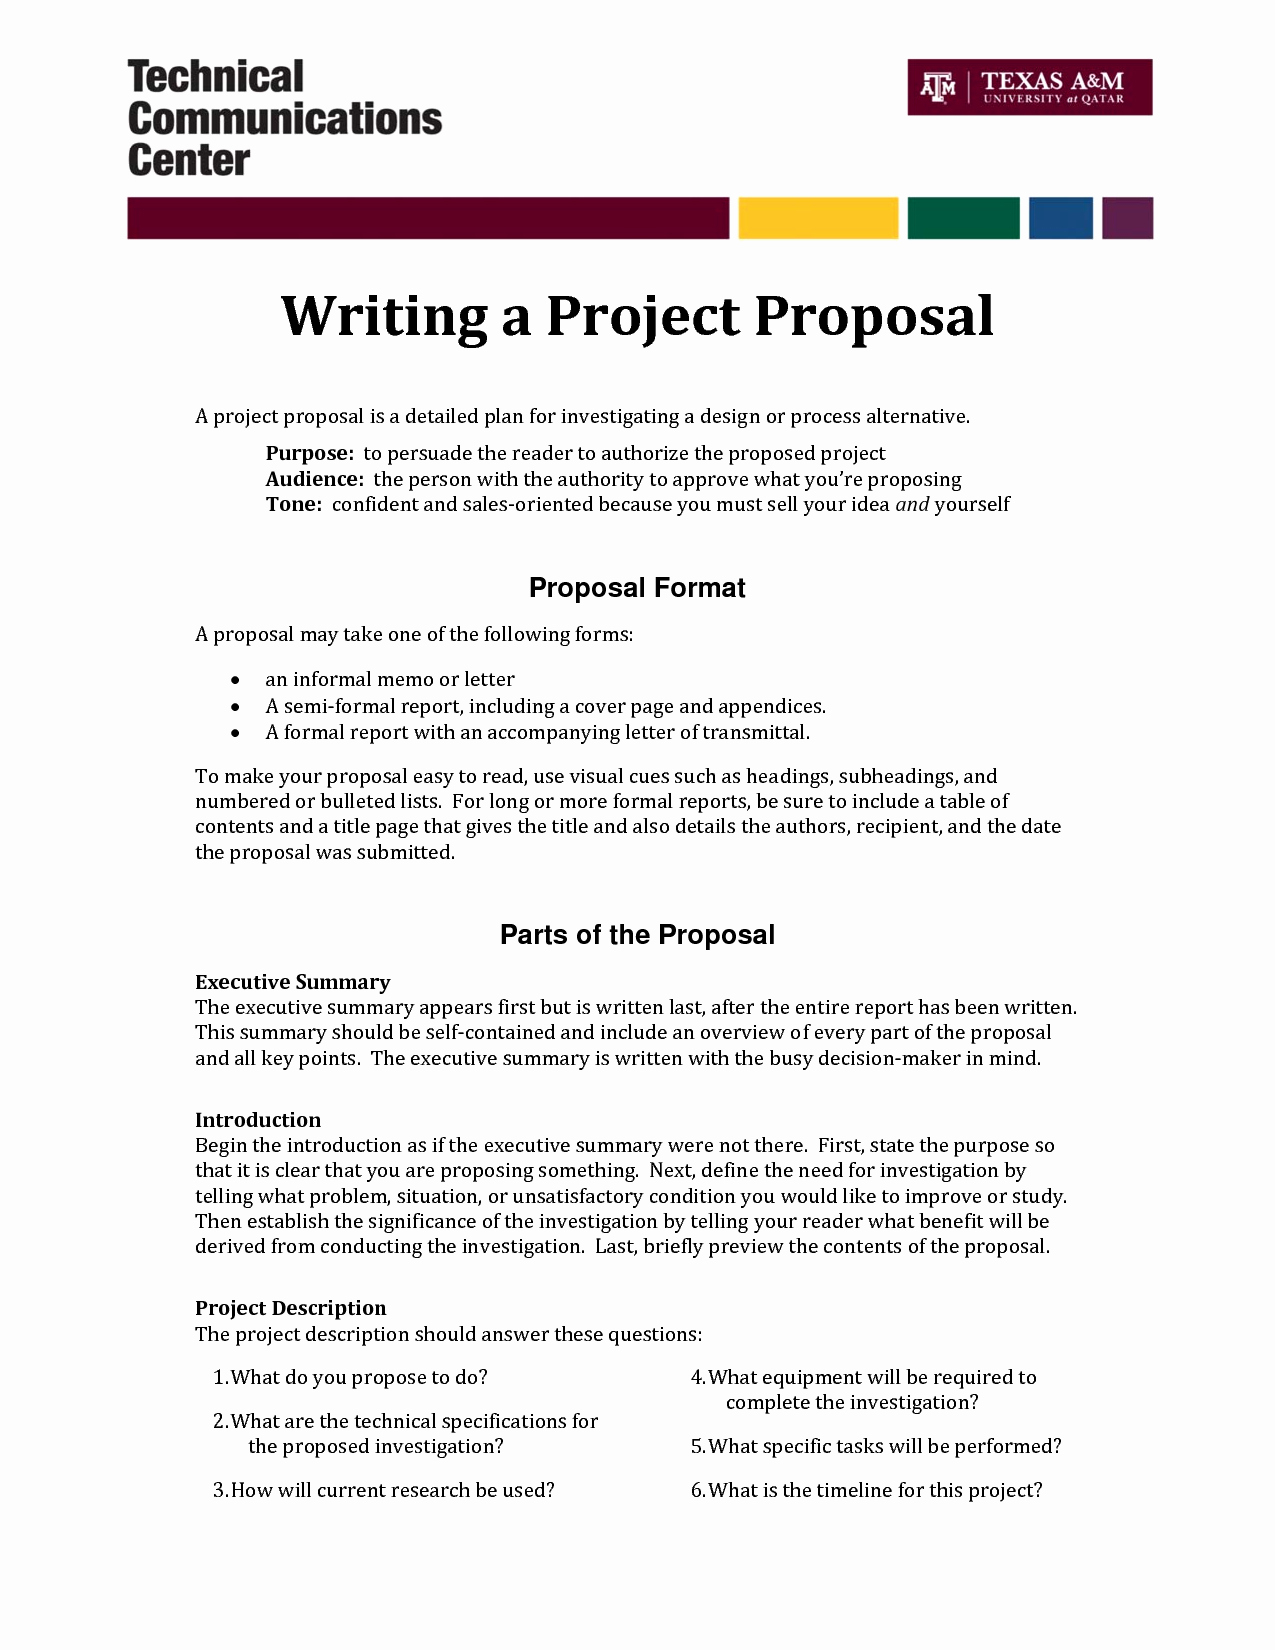 Engineering Project Proposal Template And Informal Proposal Letter With Engineering Proposal Template